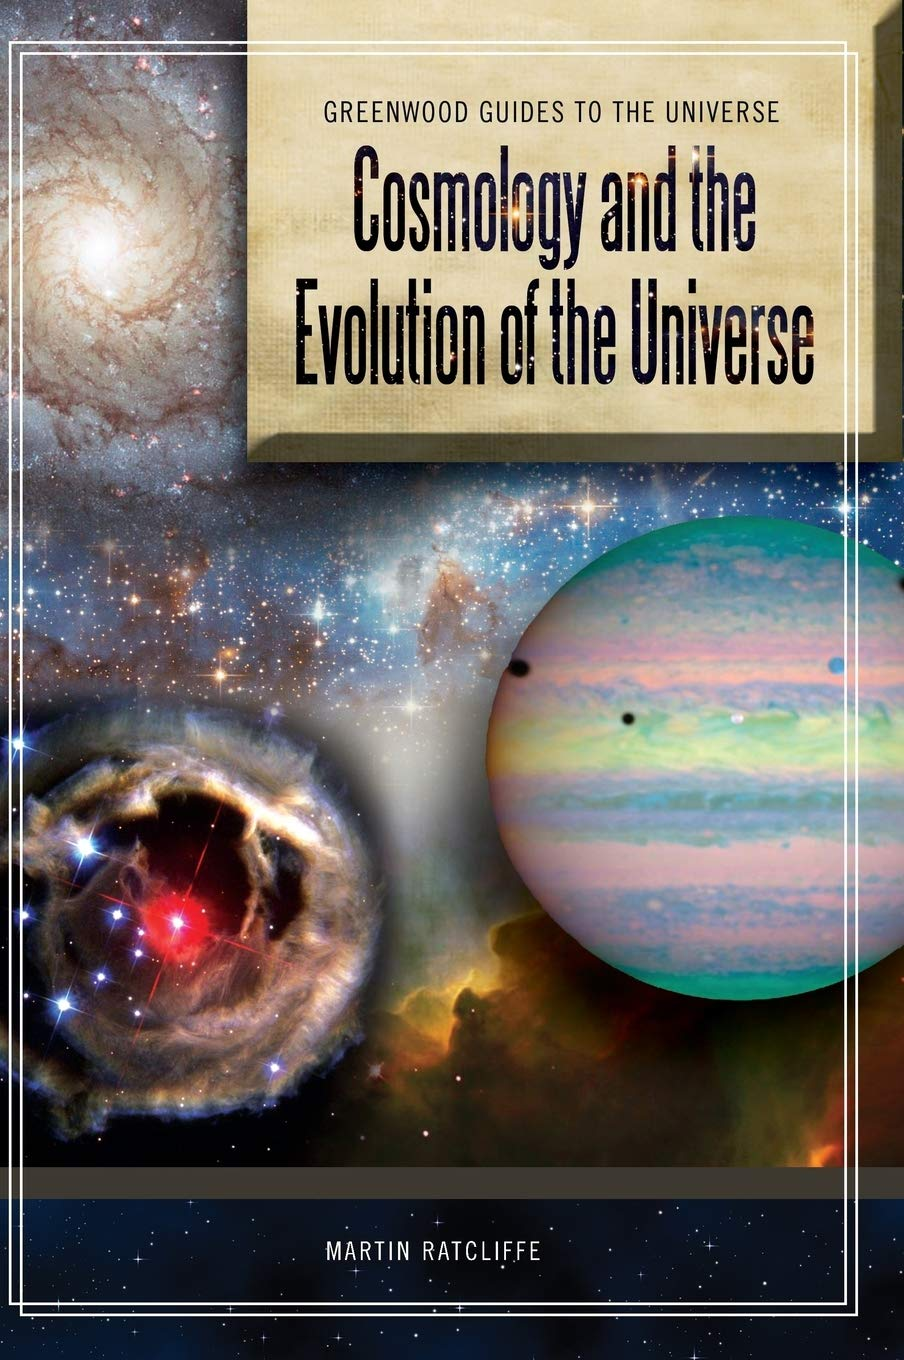 Image OfCosmology And The Evolution Of The Universe (Greenwood Guides To The Universe)